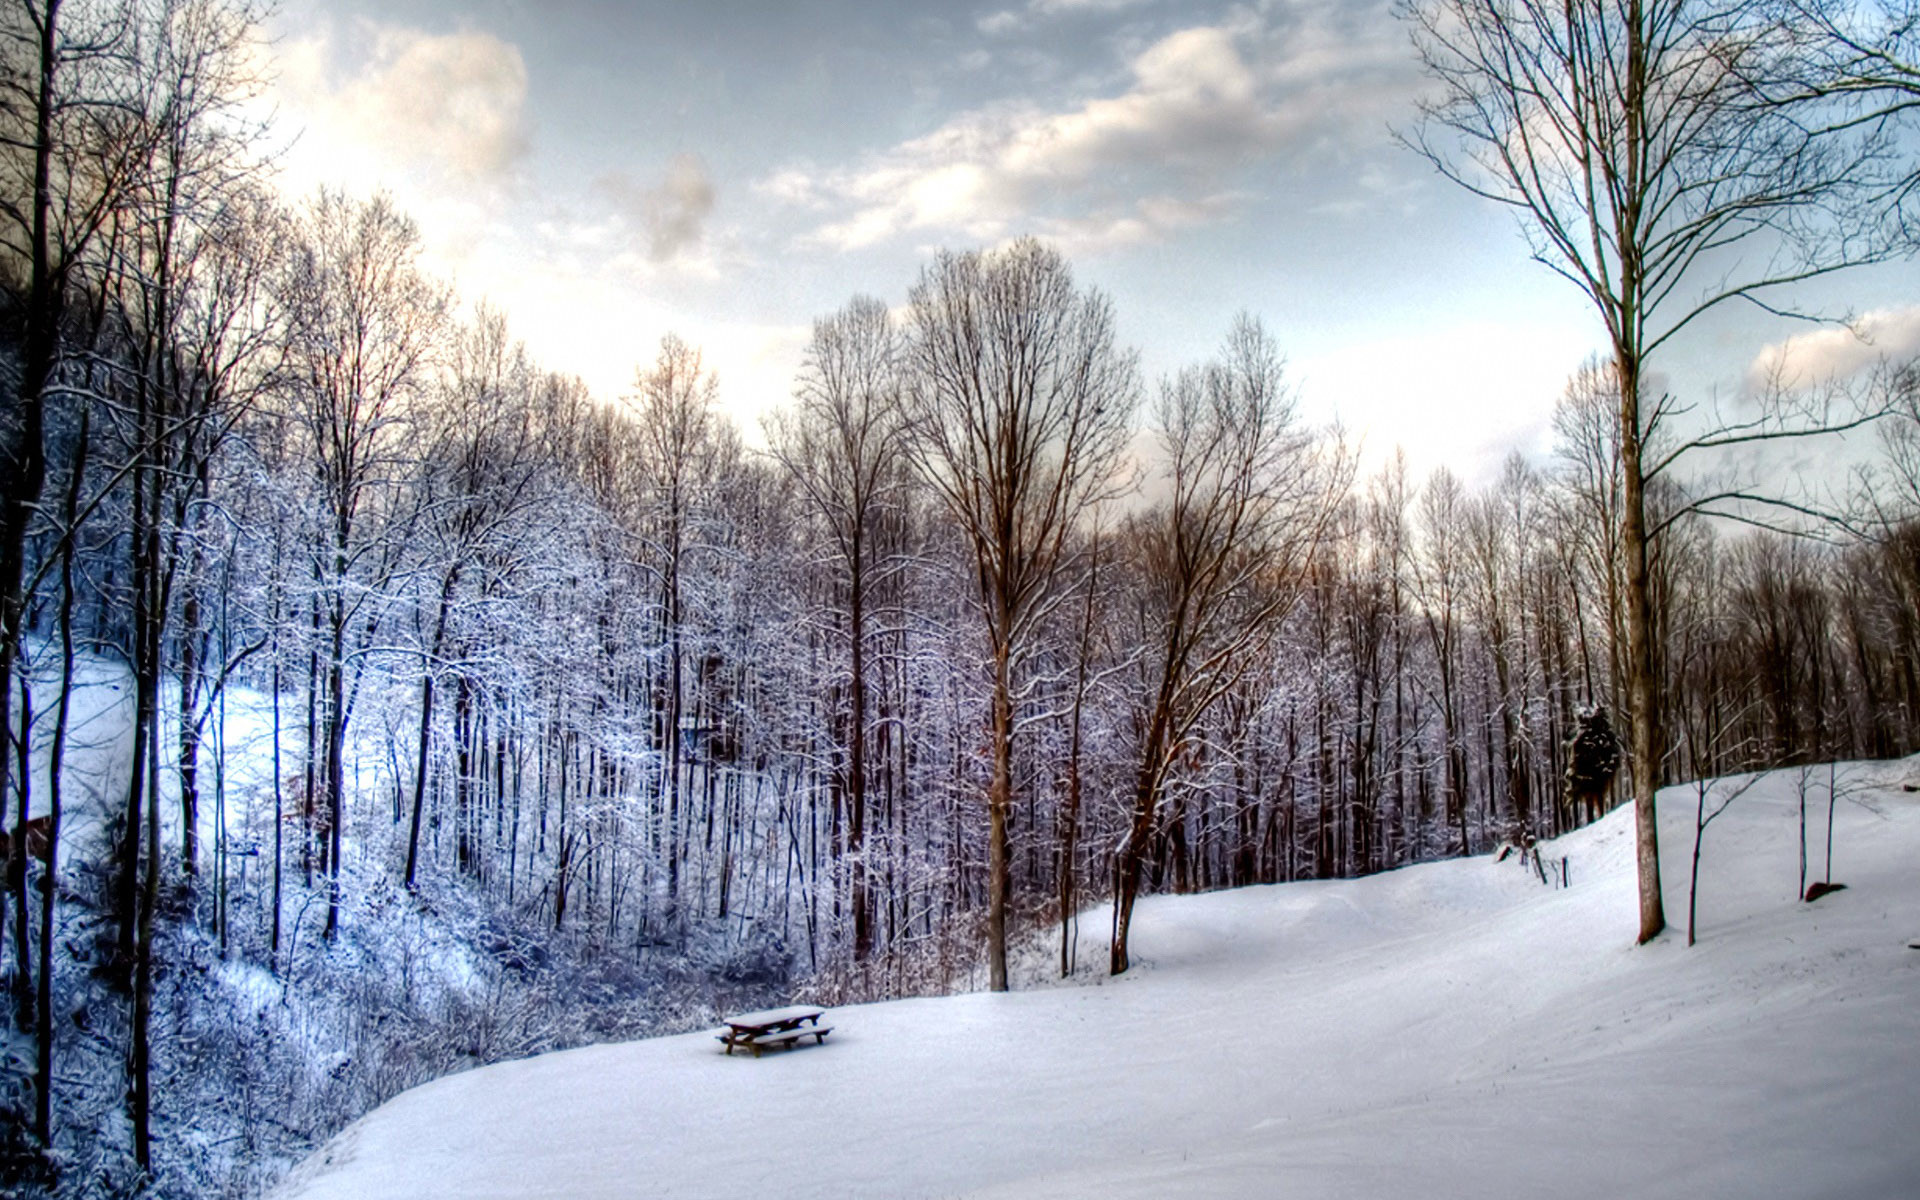 Winter Snow Pictures Wallpaper (49+ Images